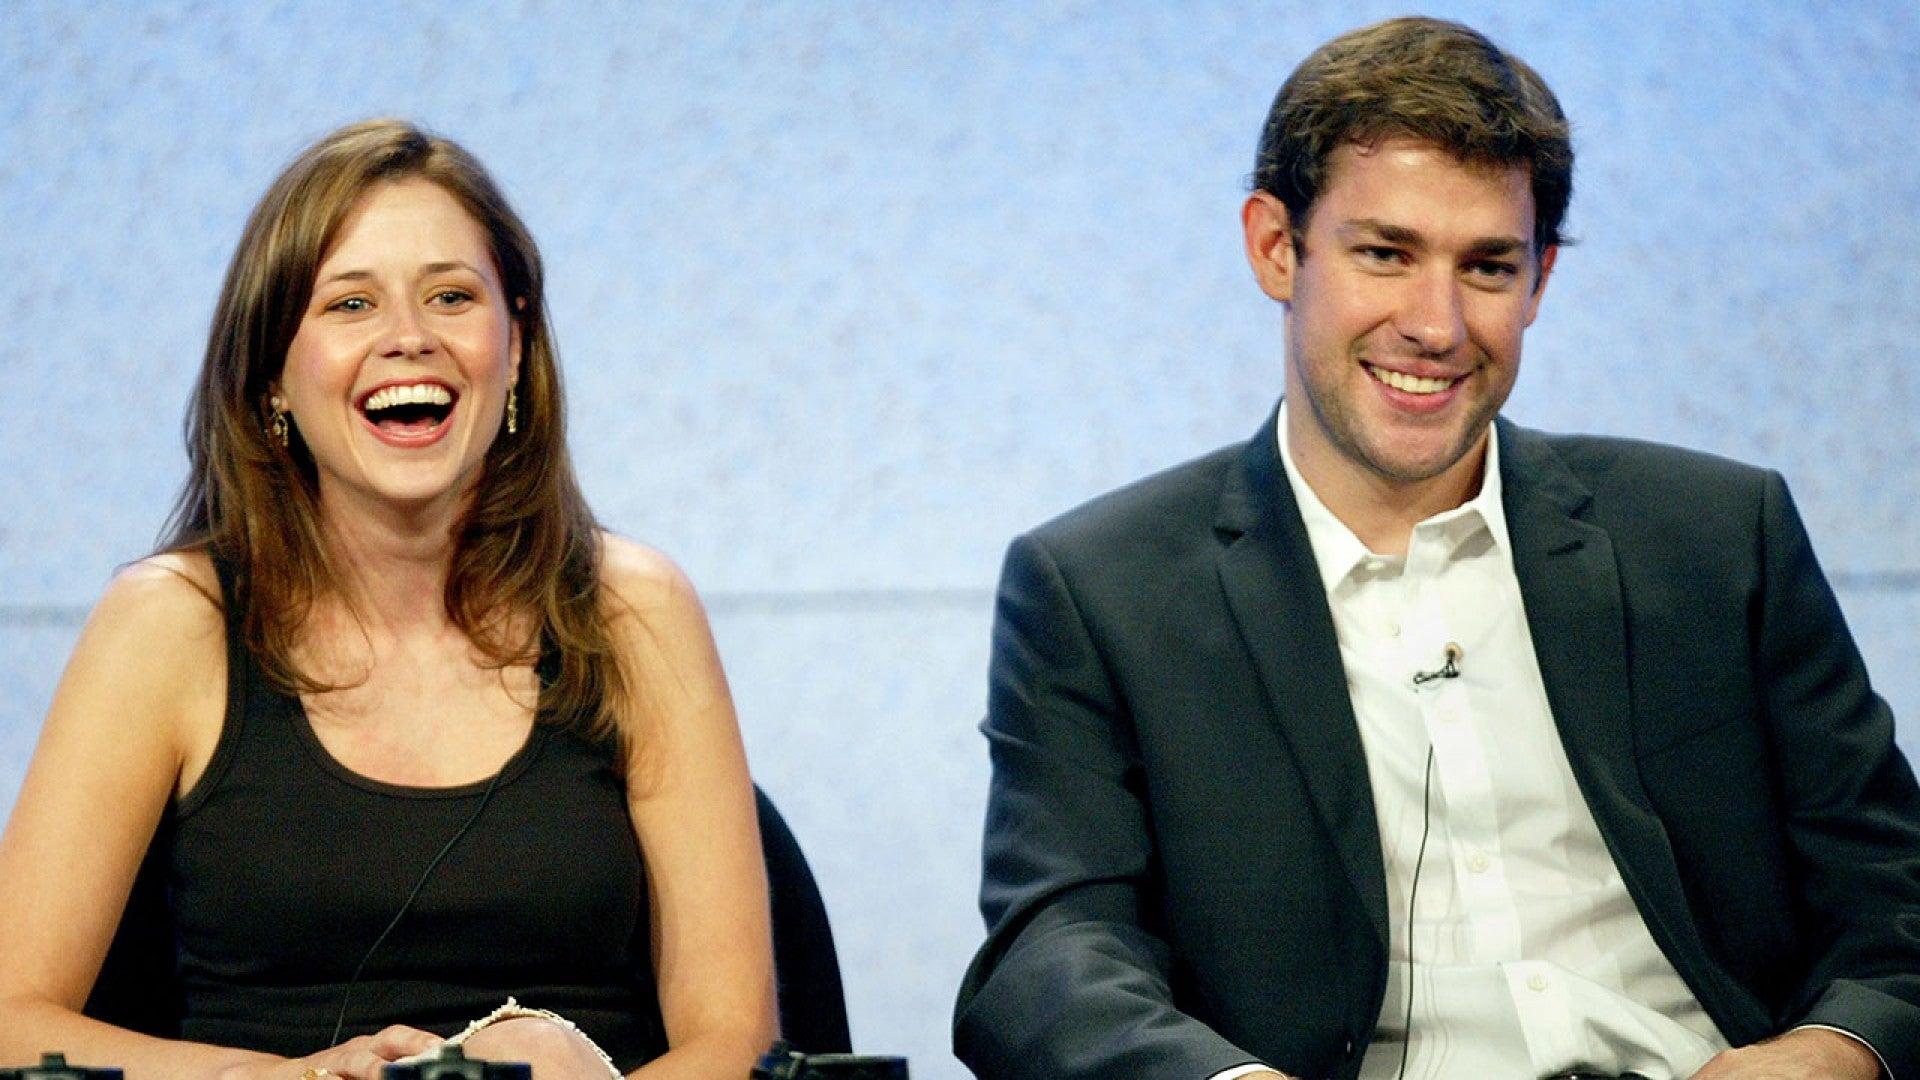 did jim and pam date in real life